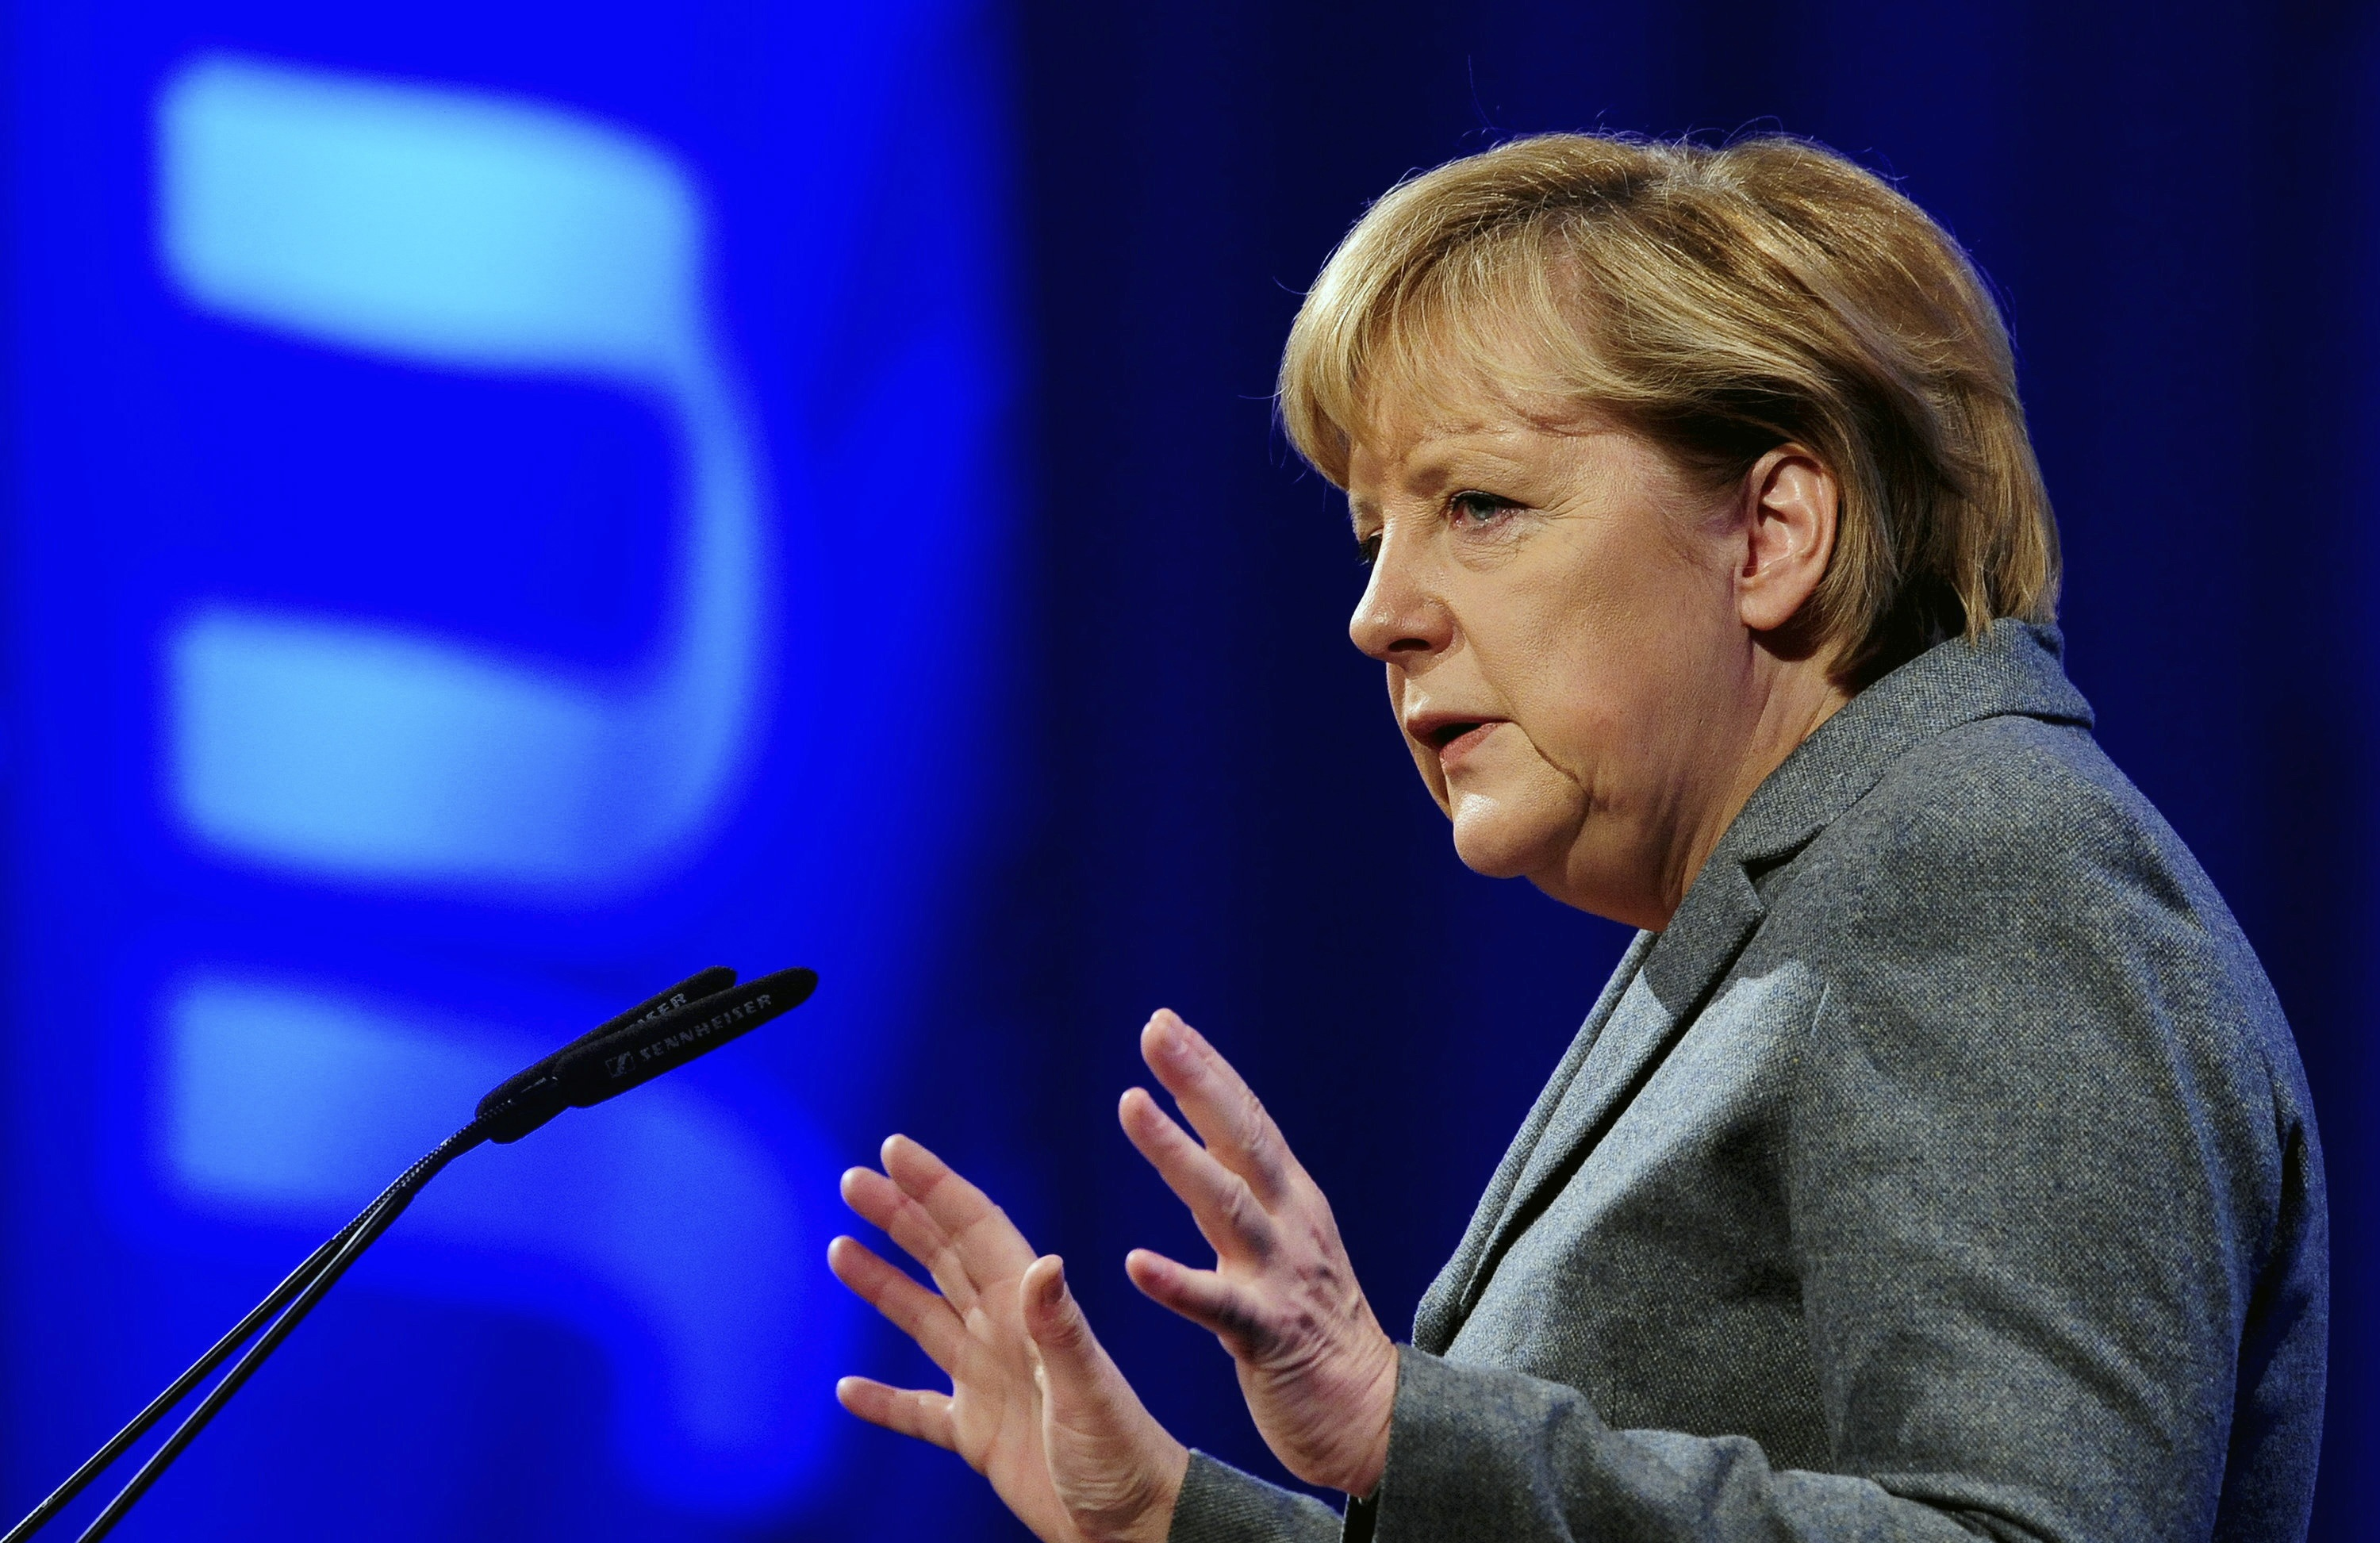 Merkel expects the involvement of the IMF in the new funding package